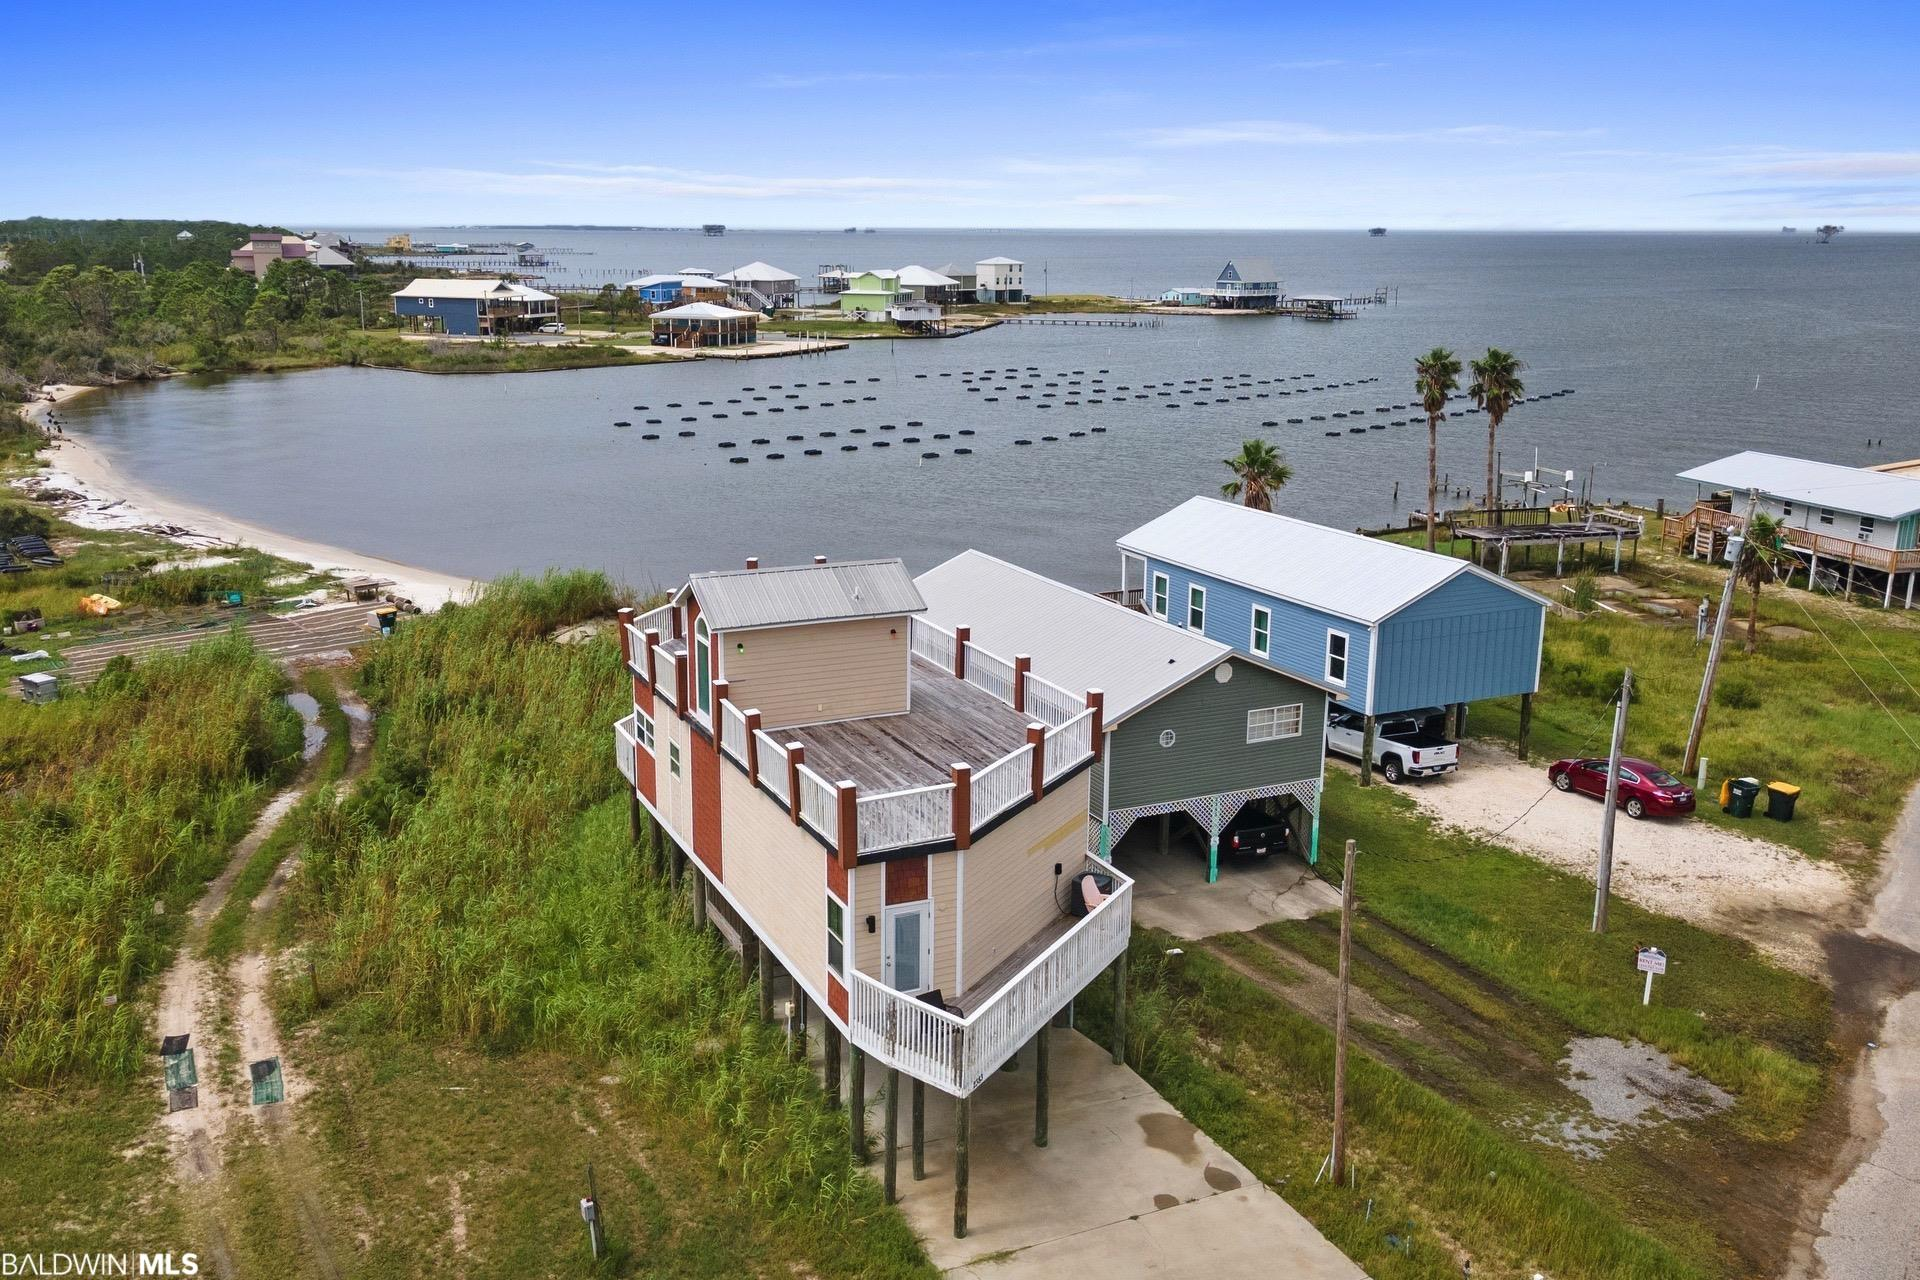 Fantastic beach house with views in every direction! Bay is right out back and the beach is a short walk. Engineered Plans attached to listing to add another floor and bedrooms. The house was Built from the ground up with that option in mind! Additional possibilities on rooftop deck are an outdoor kitchen!  Its also a great place to grow oysters in the Bay, See navy Cove oyster farm in the photos of the bay! Almost 5 stars in 52 rental reviews! When you walk into this beautiful home the first thing you notice is the amazing views! When you bring yourself to look at something other than the the views of water all around the house you will notice the granite counter tops, and tile throughout. Prefer to come in off the beach and not get all spruced up for dinner? No worries. There is fully equipped kitchen for just that. Also featured in this home is a dining area for 6, a full sized washer and dryer, Analog TV, and two full bathrooms. Best of all, this 2 bedroom home sleeps 5. Whether you are a family or a group of friends, you can all stay together without crowding one another. The home has 2 Queen beds and 2 twin rollaway beds. Other property amenities include Wireless internet, and direct access to the beach. Panoramic views of the Gulf of Mexico and Mobile Bay can be seen from your home! The Mobile Bay Ferry, Historic Fort Morgan, and a Marina are just minutes away, for all your boating/fishing/kayaking/exploring needs.